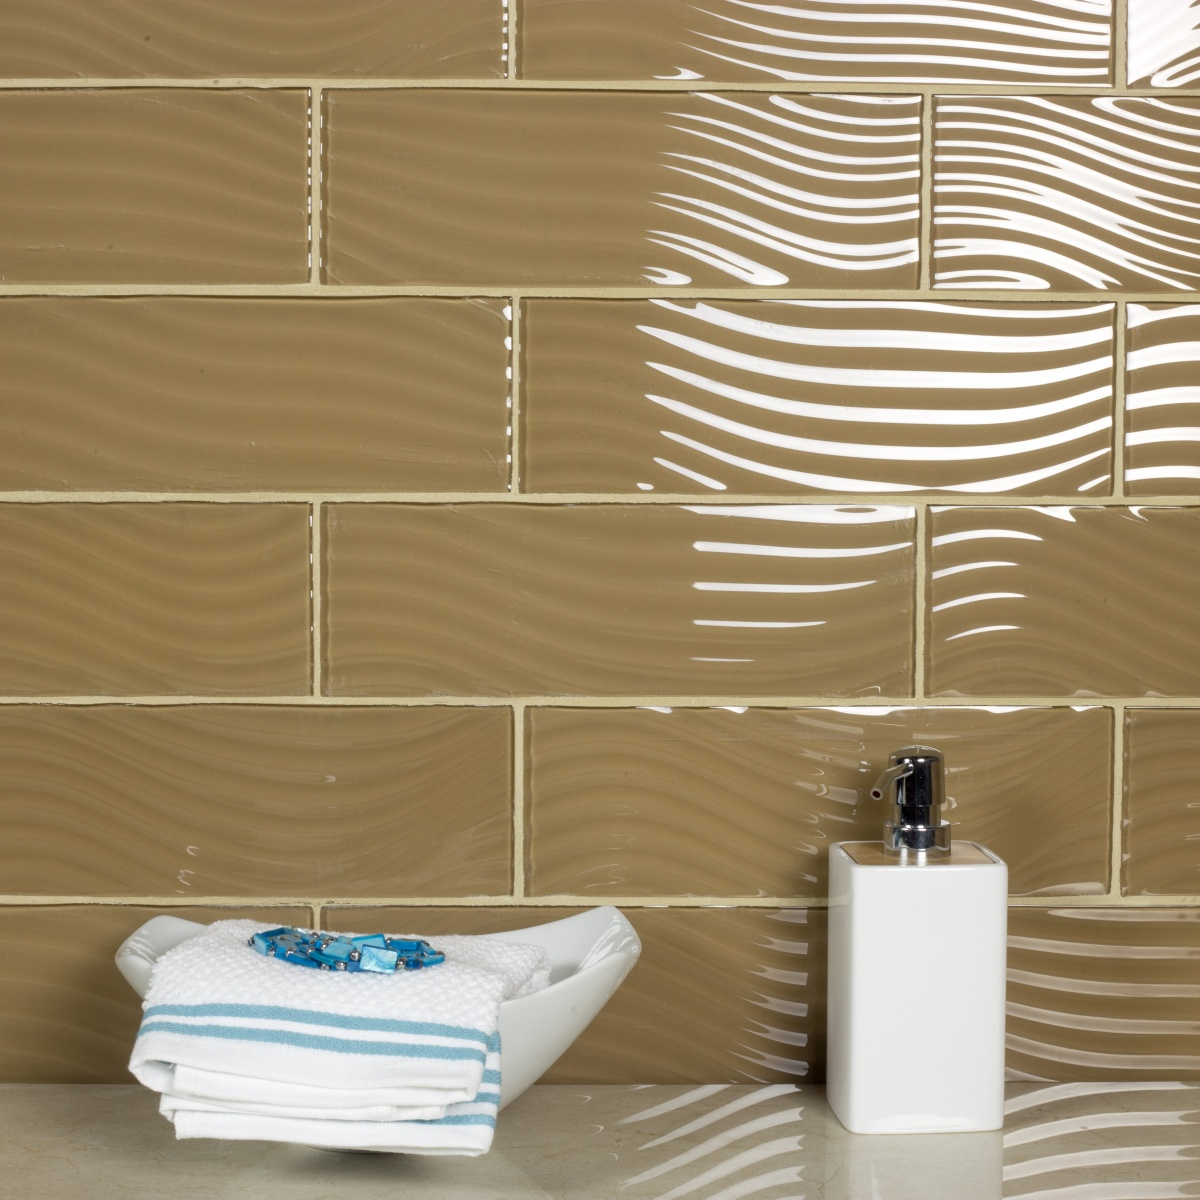 Pacific 4 In X 12 In Glass Subway Tile In SEPIA Glossy